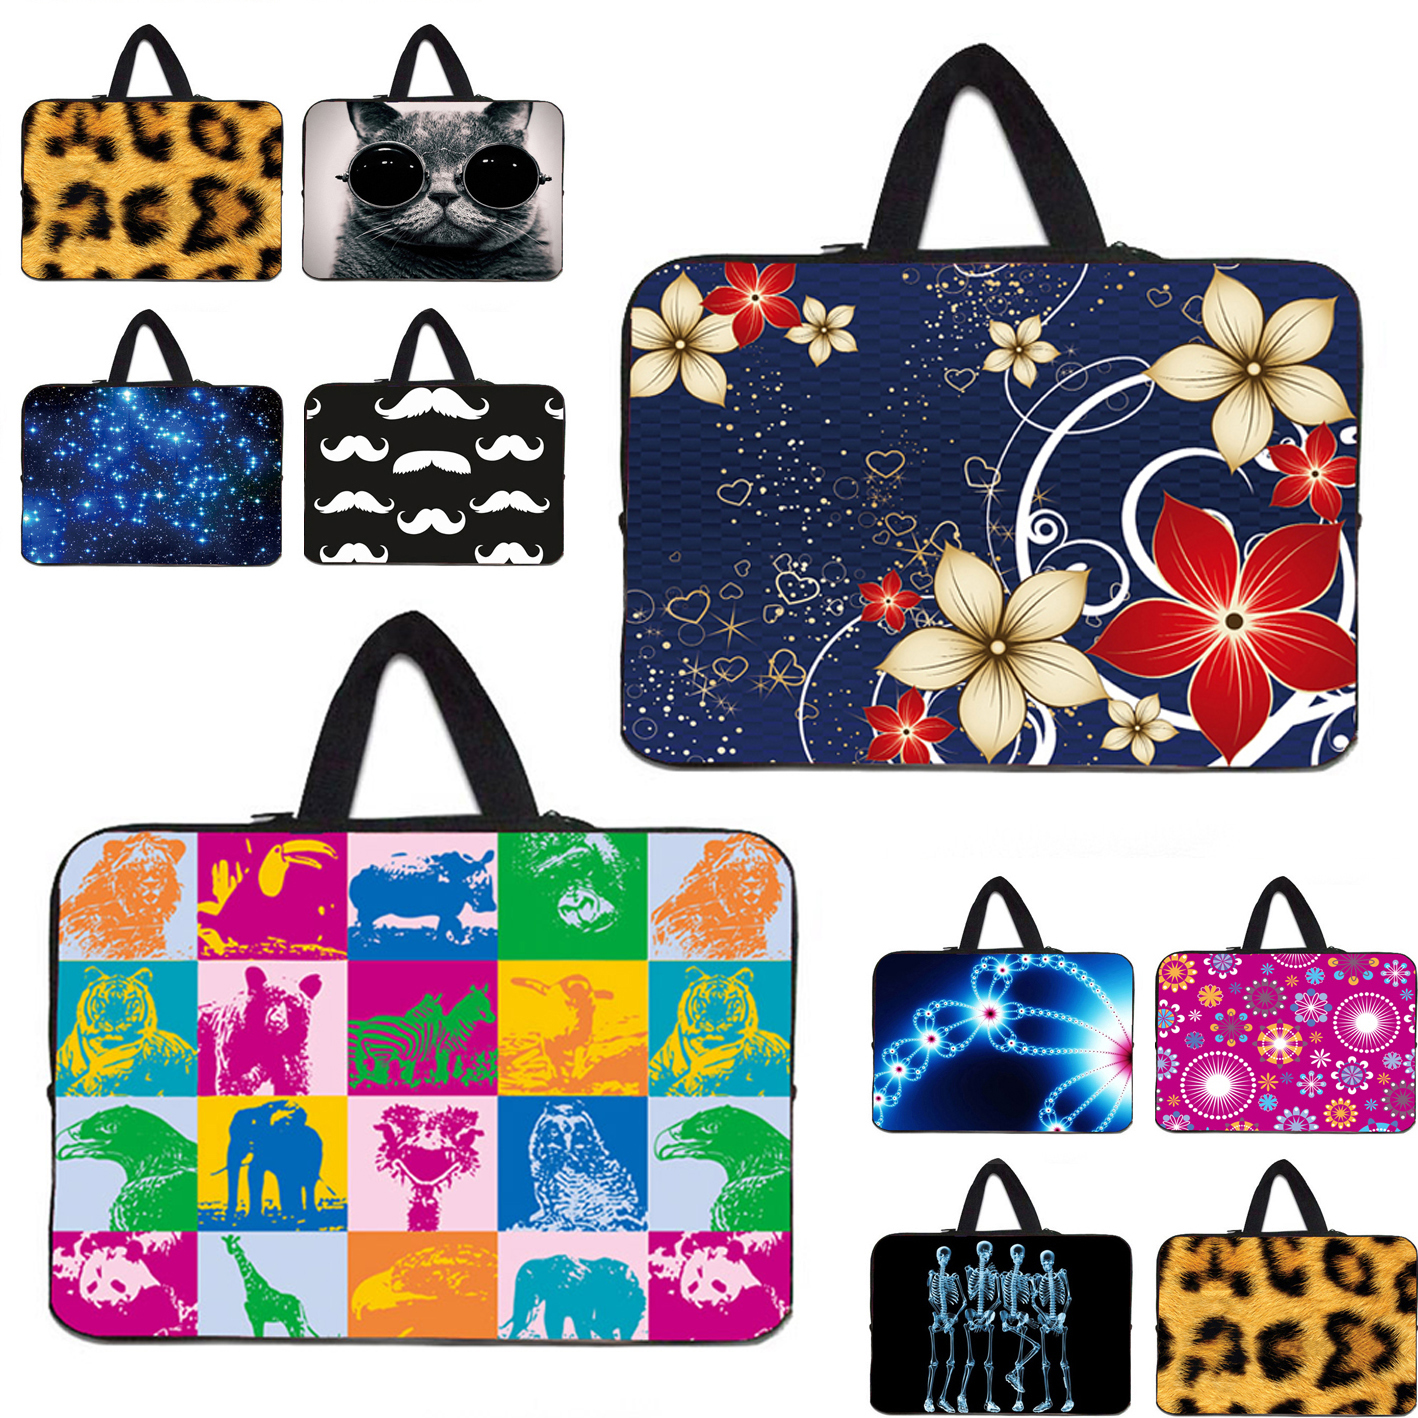 Personilty Design Soft 7 10 12 13 14 15 17 inch Laptop Sleeve Bag Zipper Neoprene Carry Cases For Acer Aspire One 11 13 15 Dell(China (Mainland))